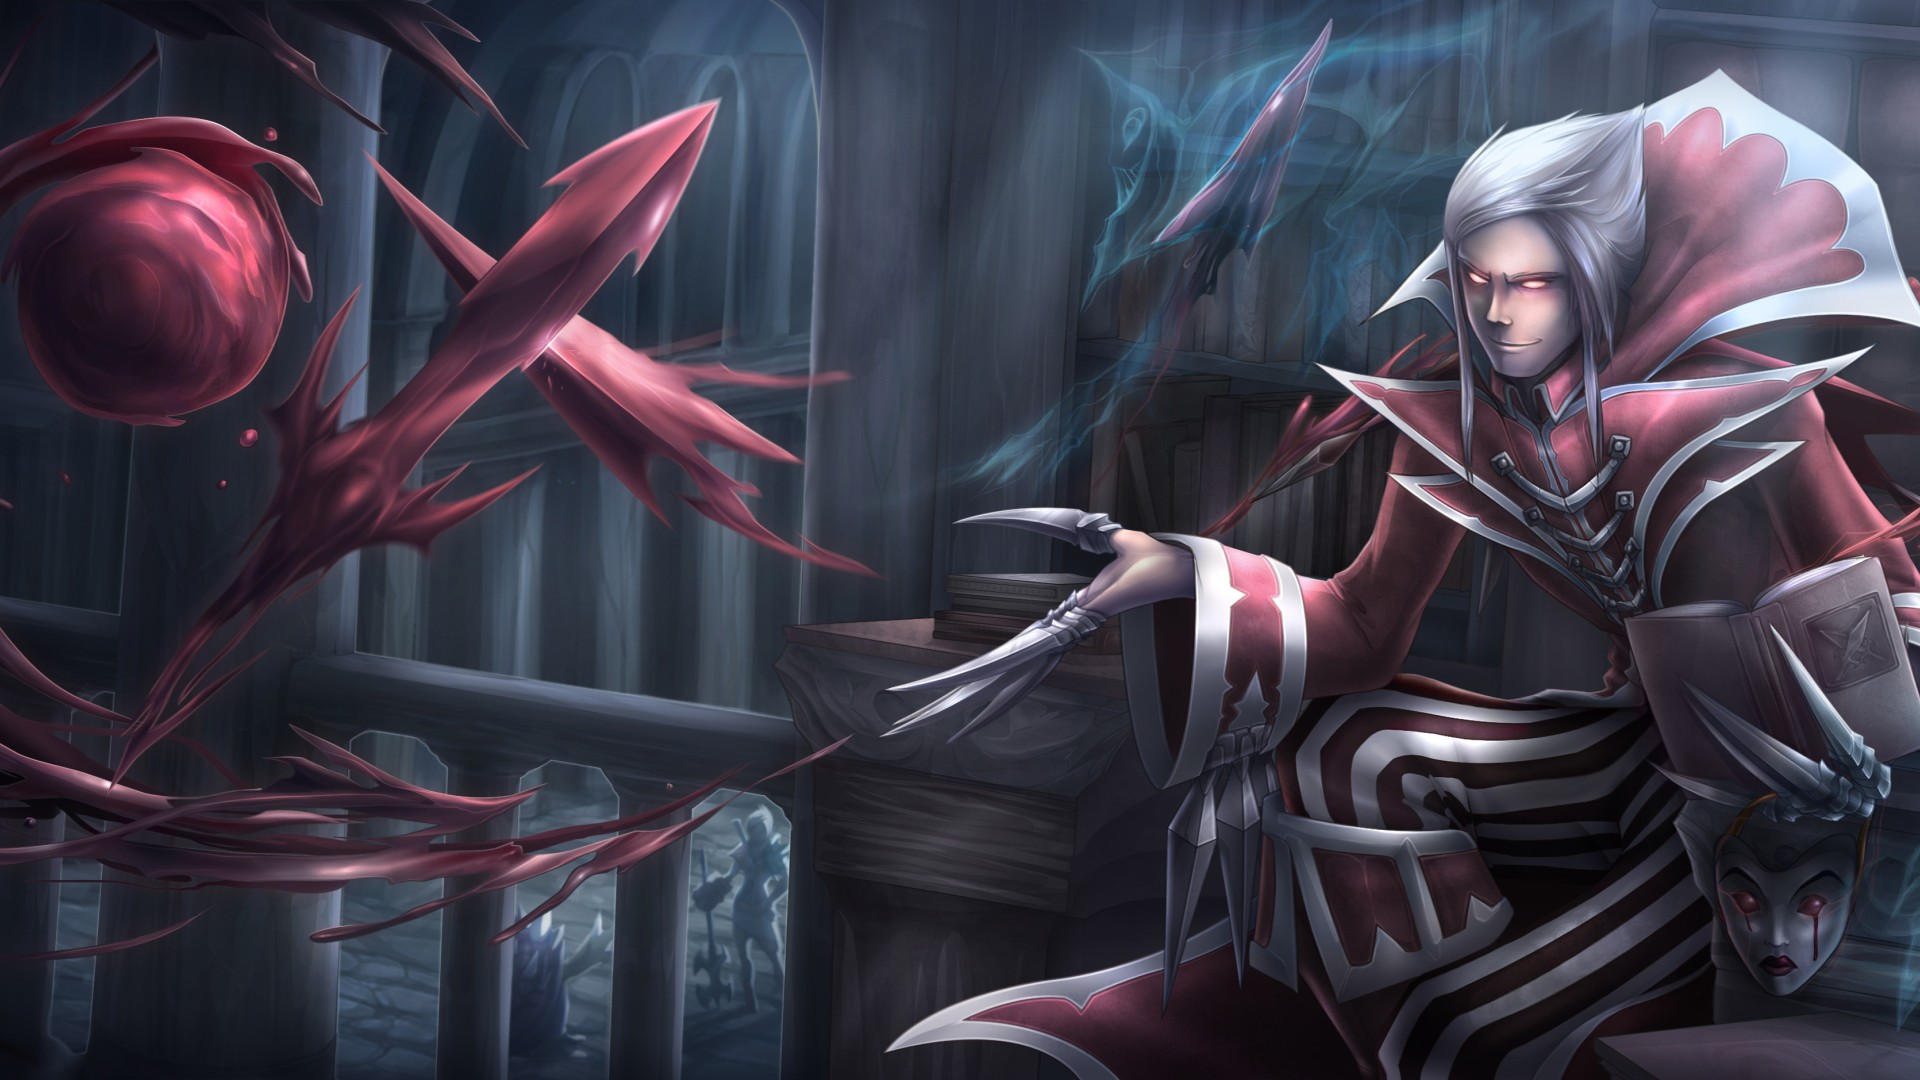 Vladimir Wallpaper Hd 1920x1080 League Of Legends